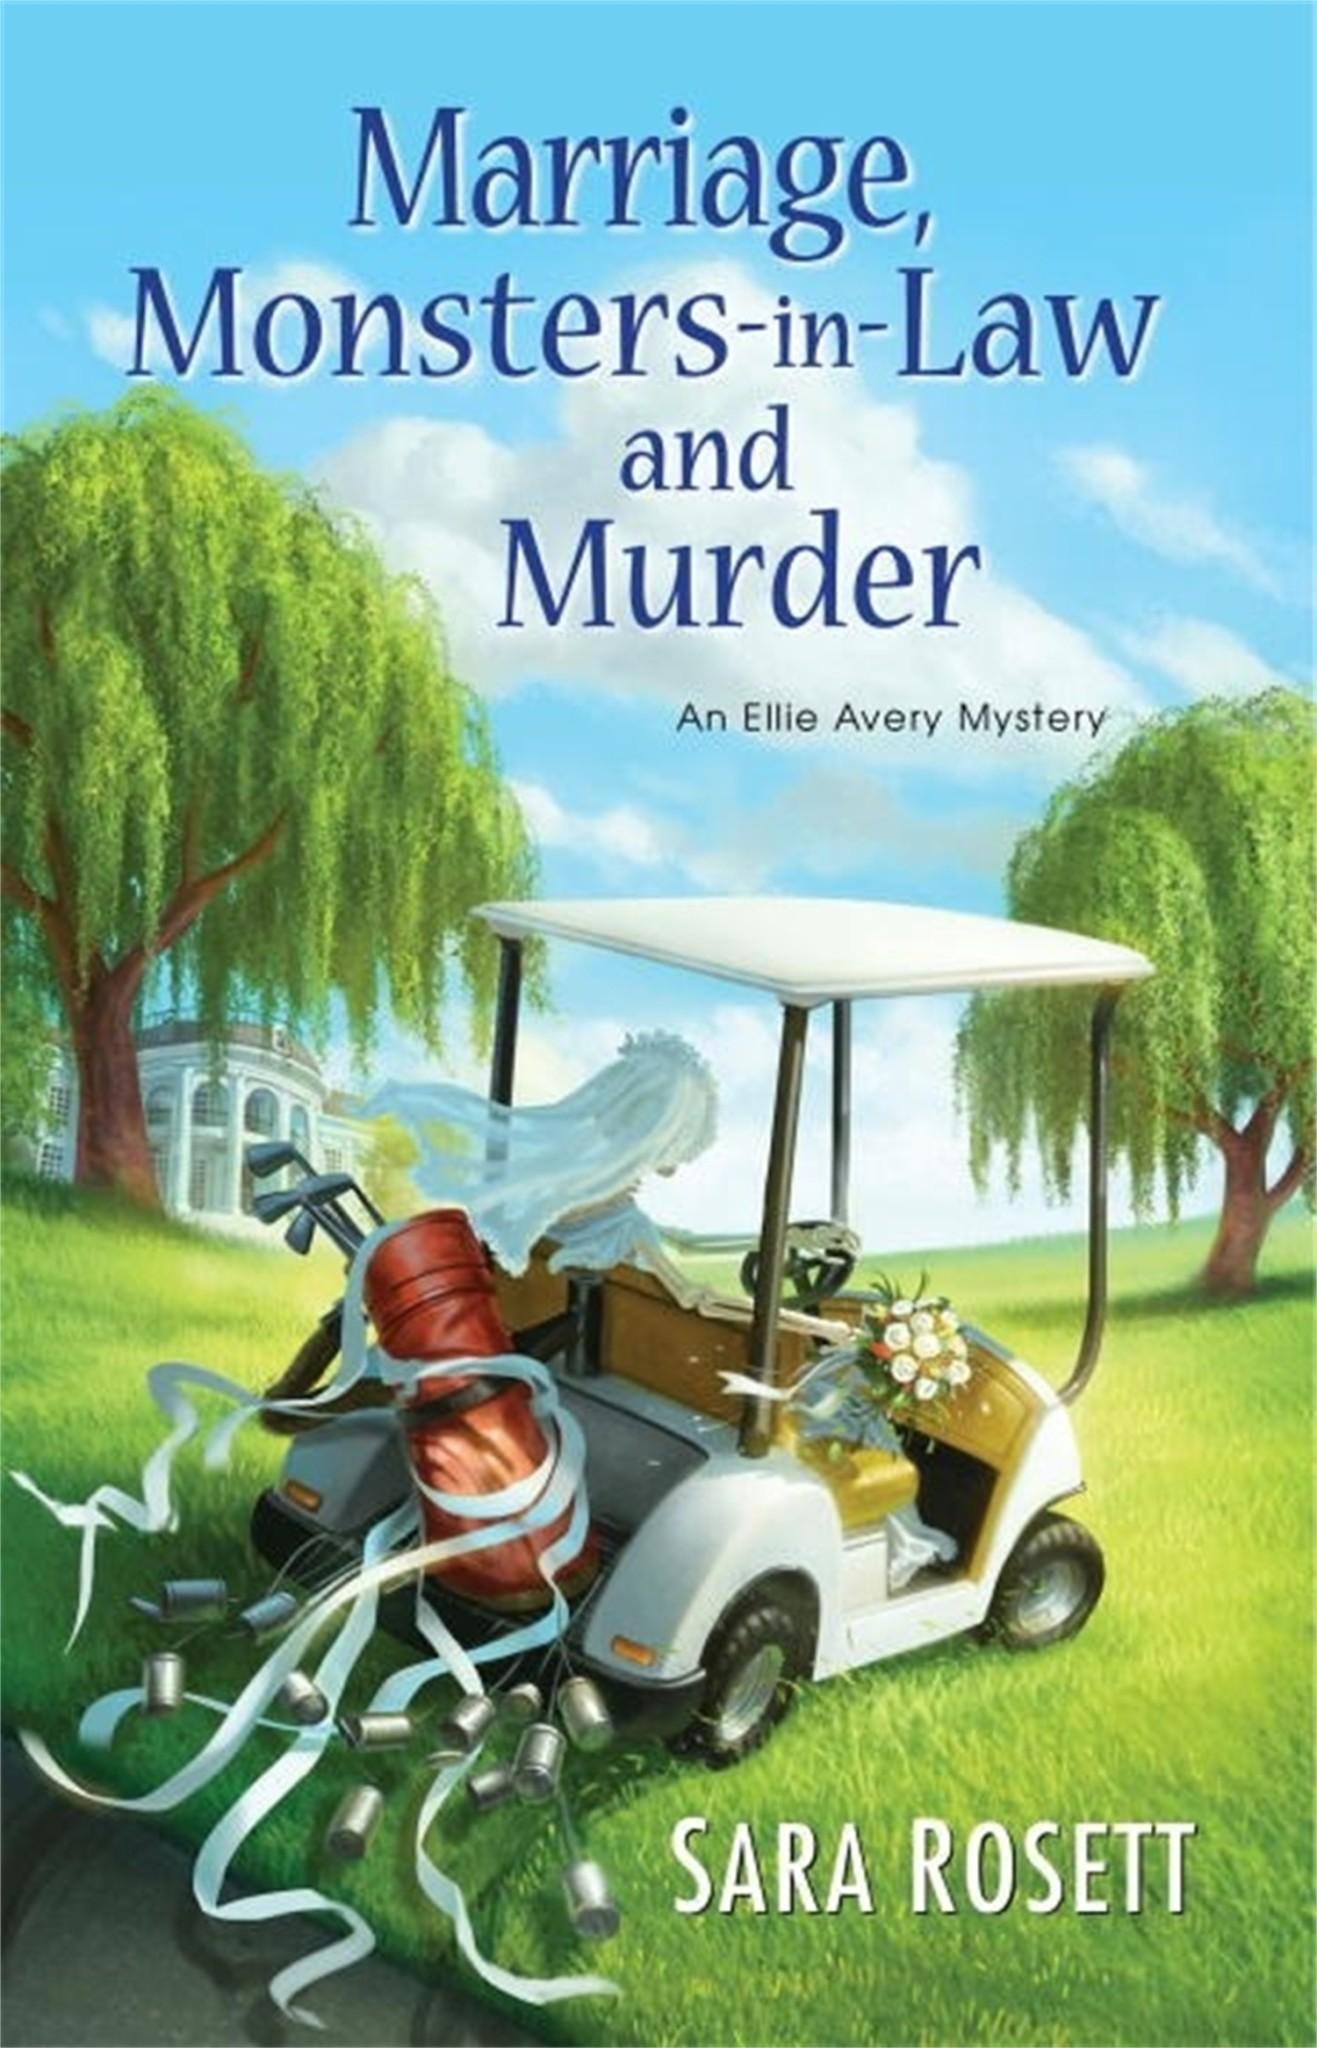 Book signing at Murder by the Book! July 9th, 4:30 p.m.